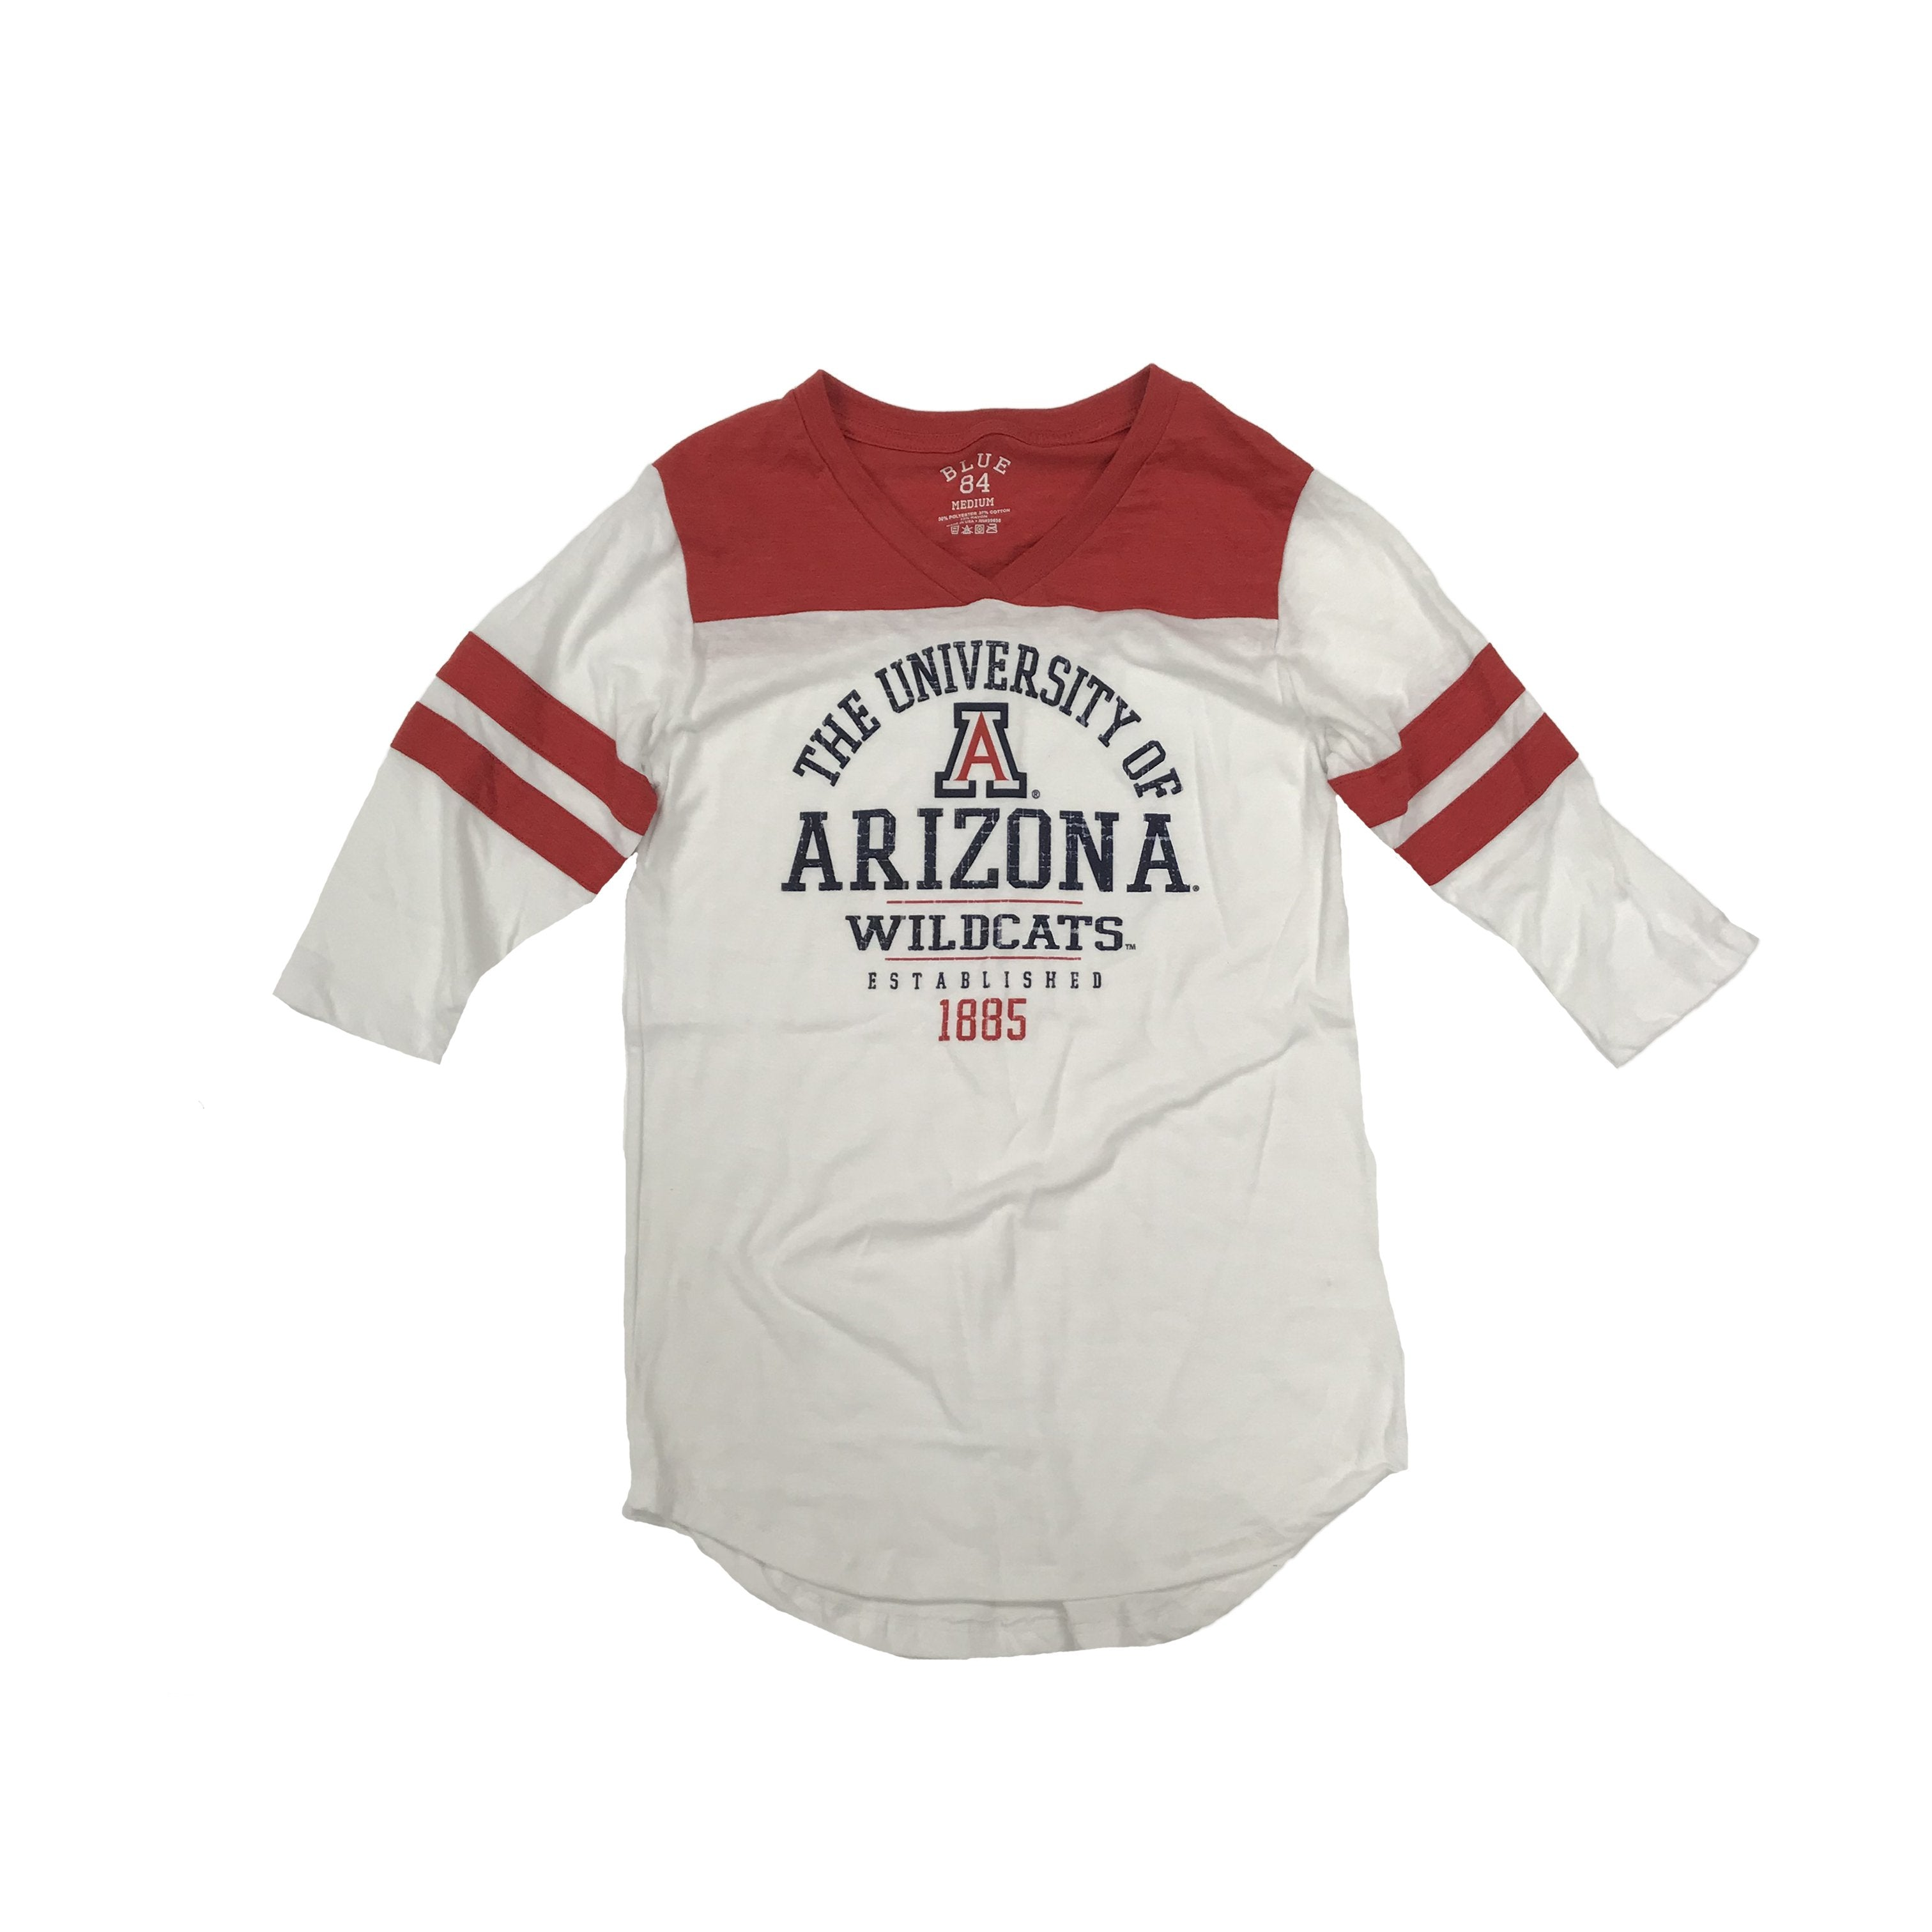 NCAA ARIZONA WILDCATS WOMEN'S INTERGALACTIC 3/4 BLUE 84 TEE - RED